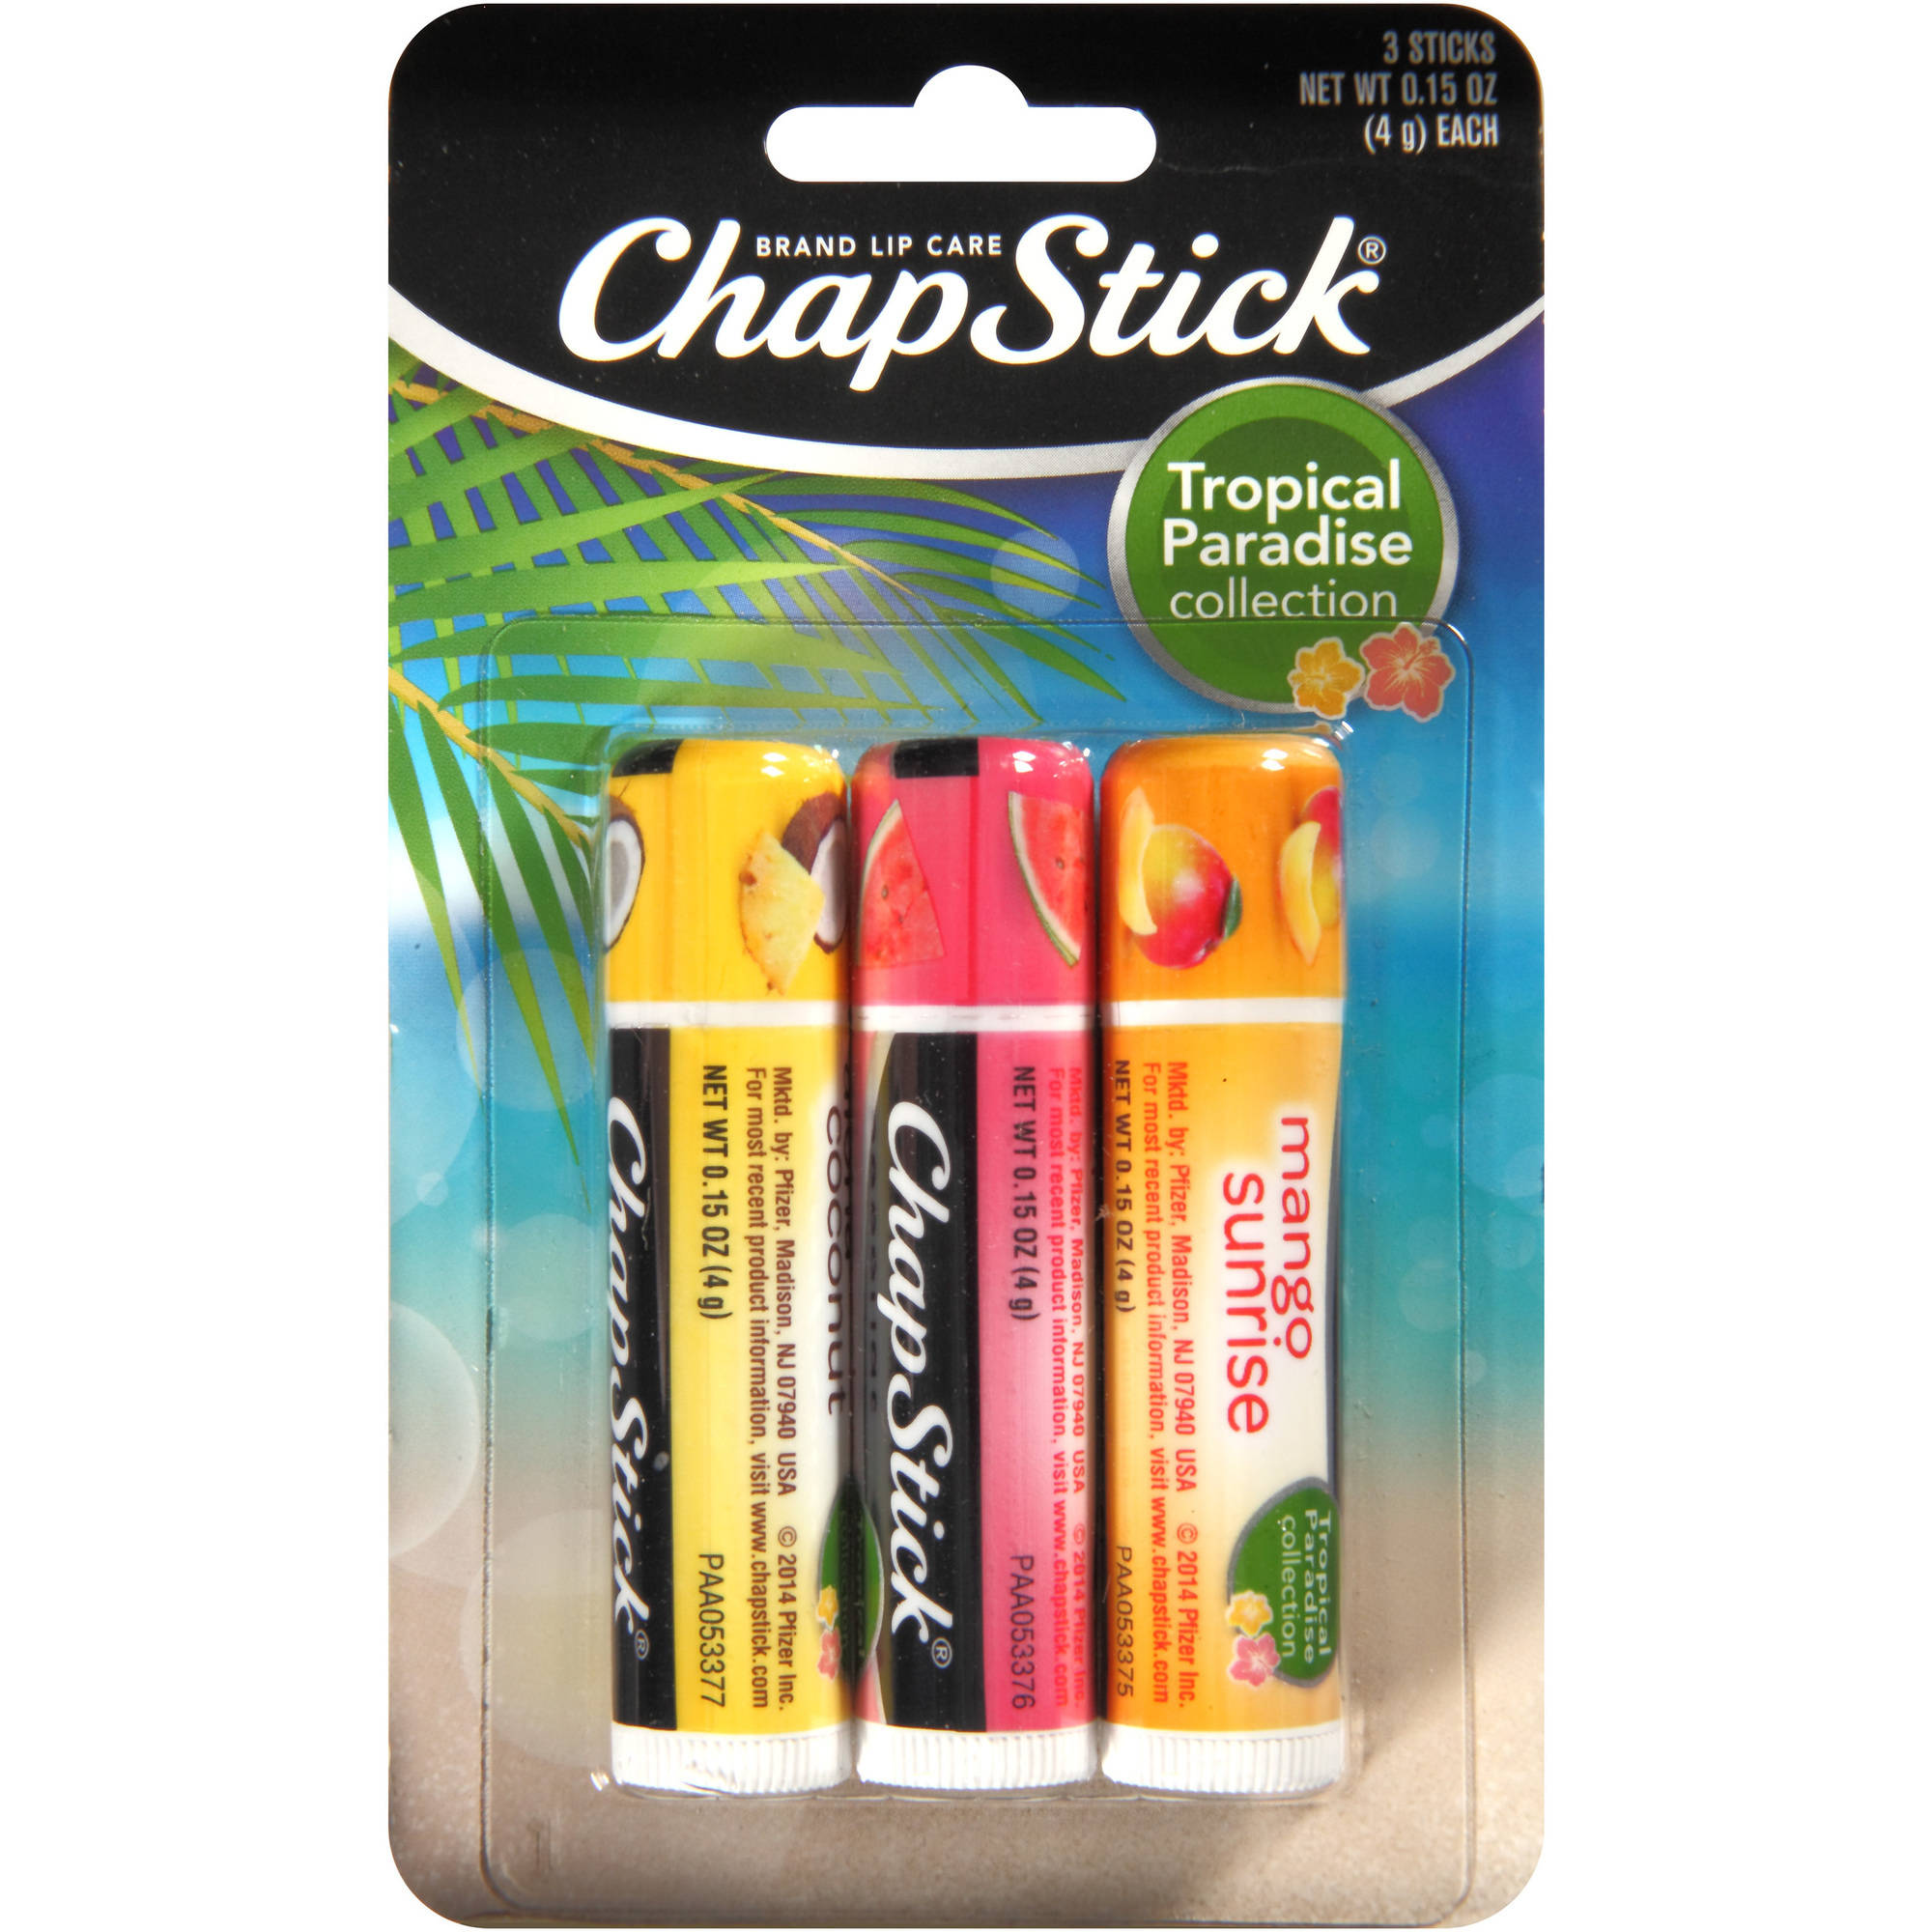 ChapStick Tropical Paradise Collection Lip Balm Variety Pack, .15 oz, 3 count